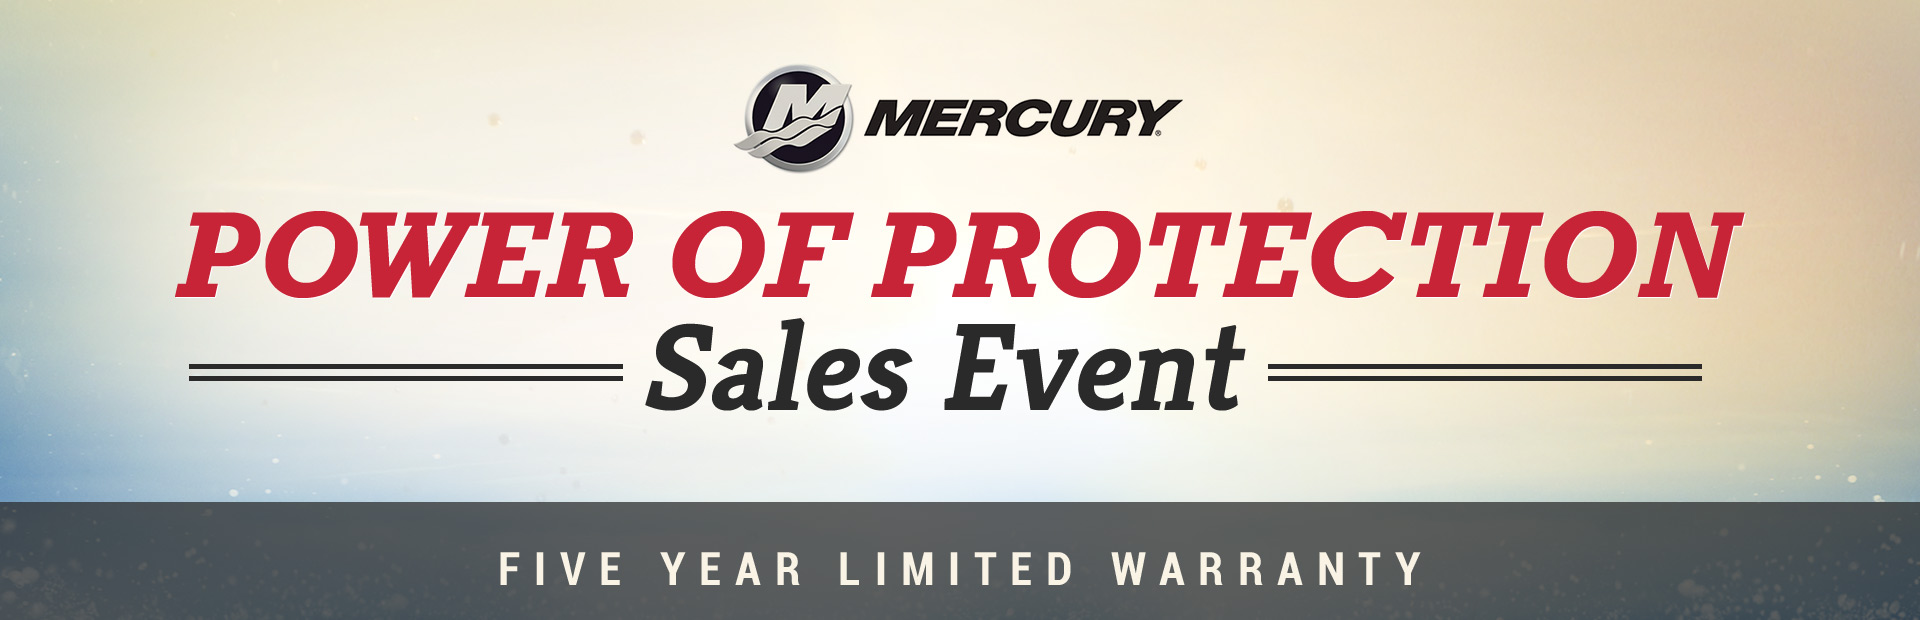 Mercury: Power of Protection Sales Event